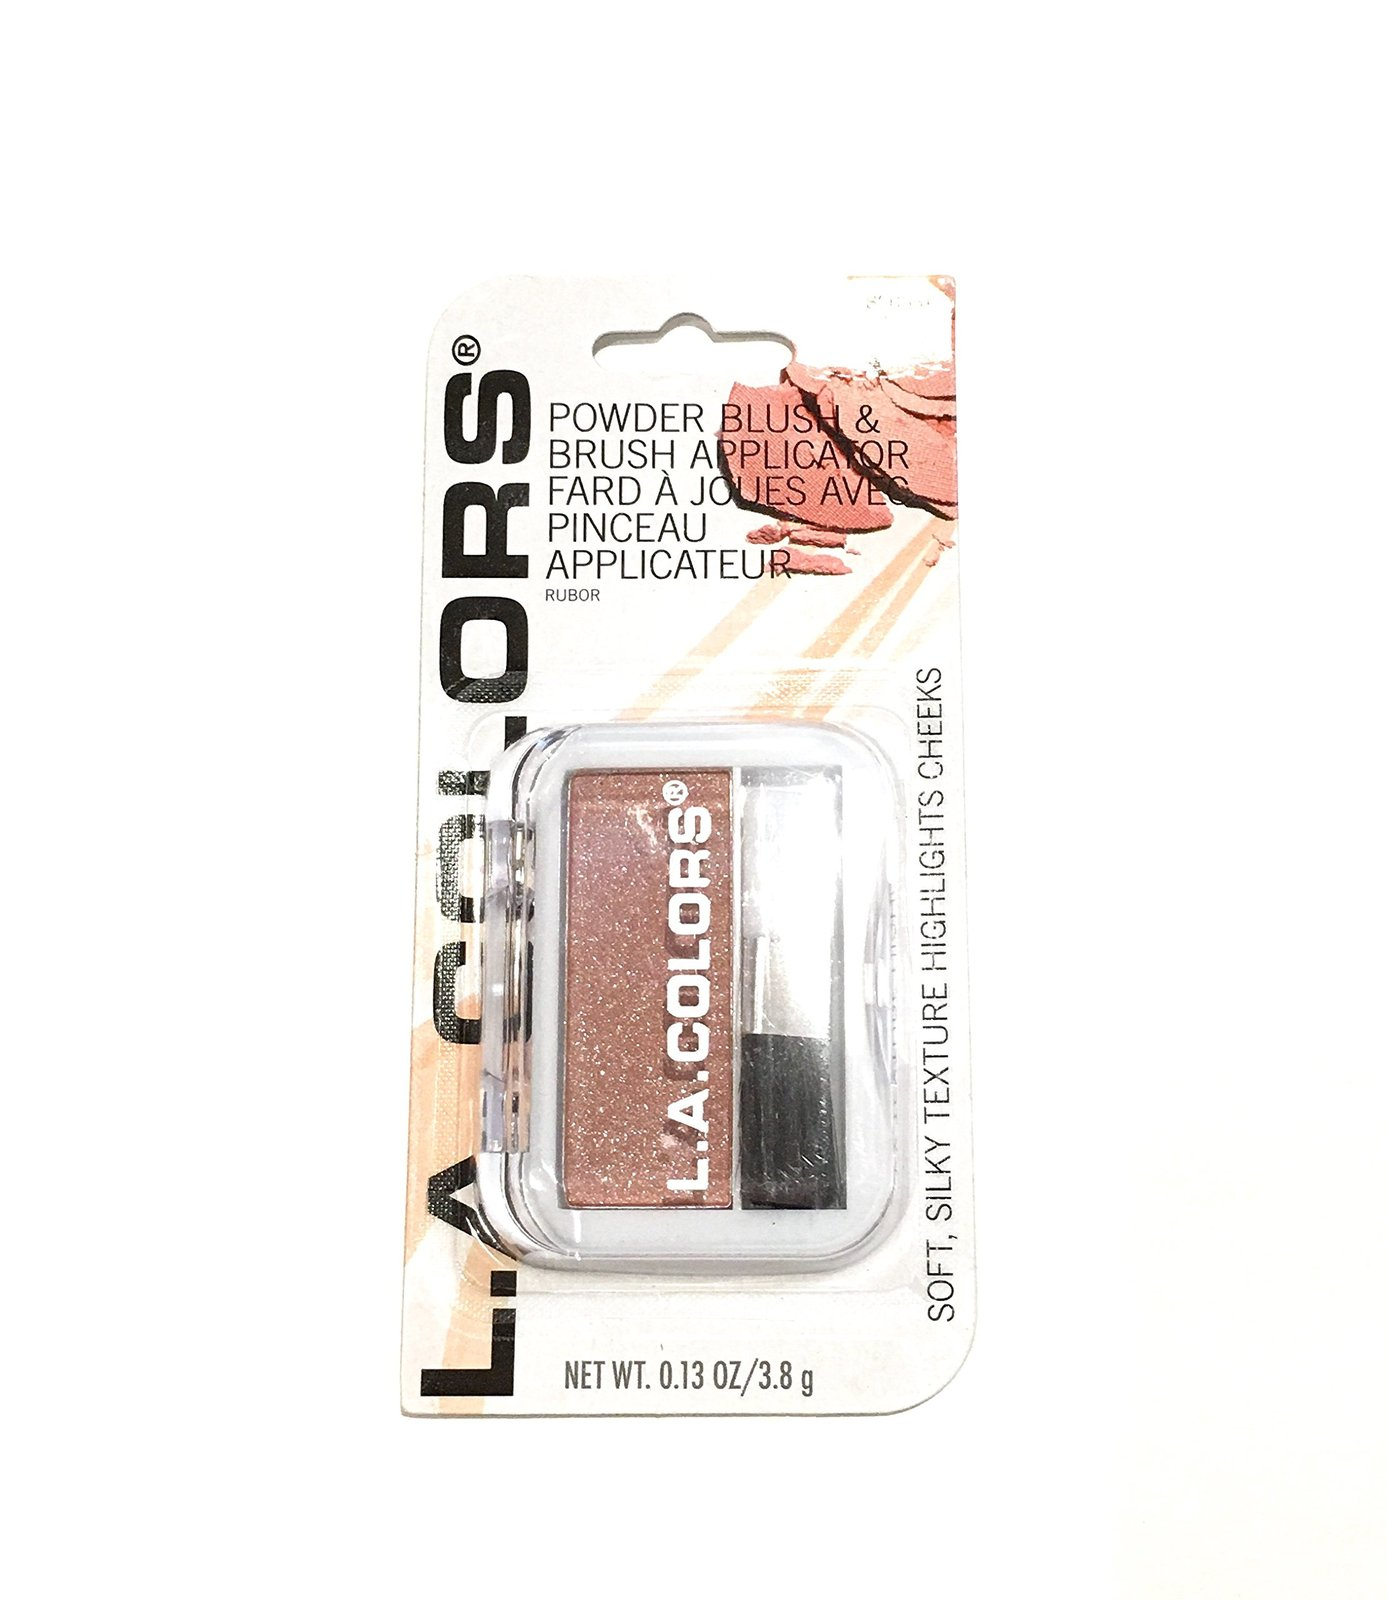 L.A Colors Professional Series BLUSH with Applicator, BSB331 Peach Rose, 0.13 Oz - $4.94